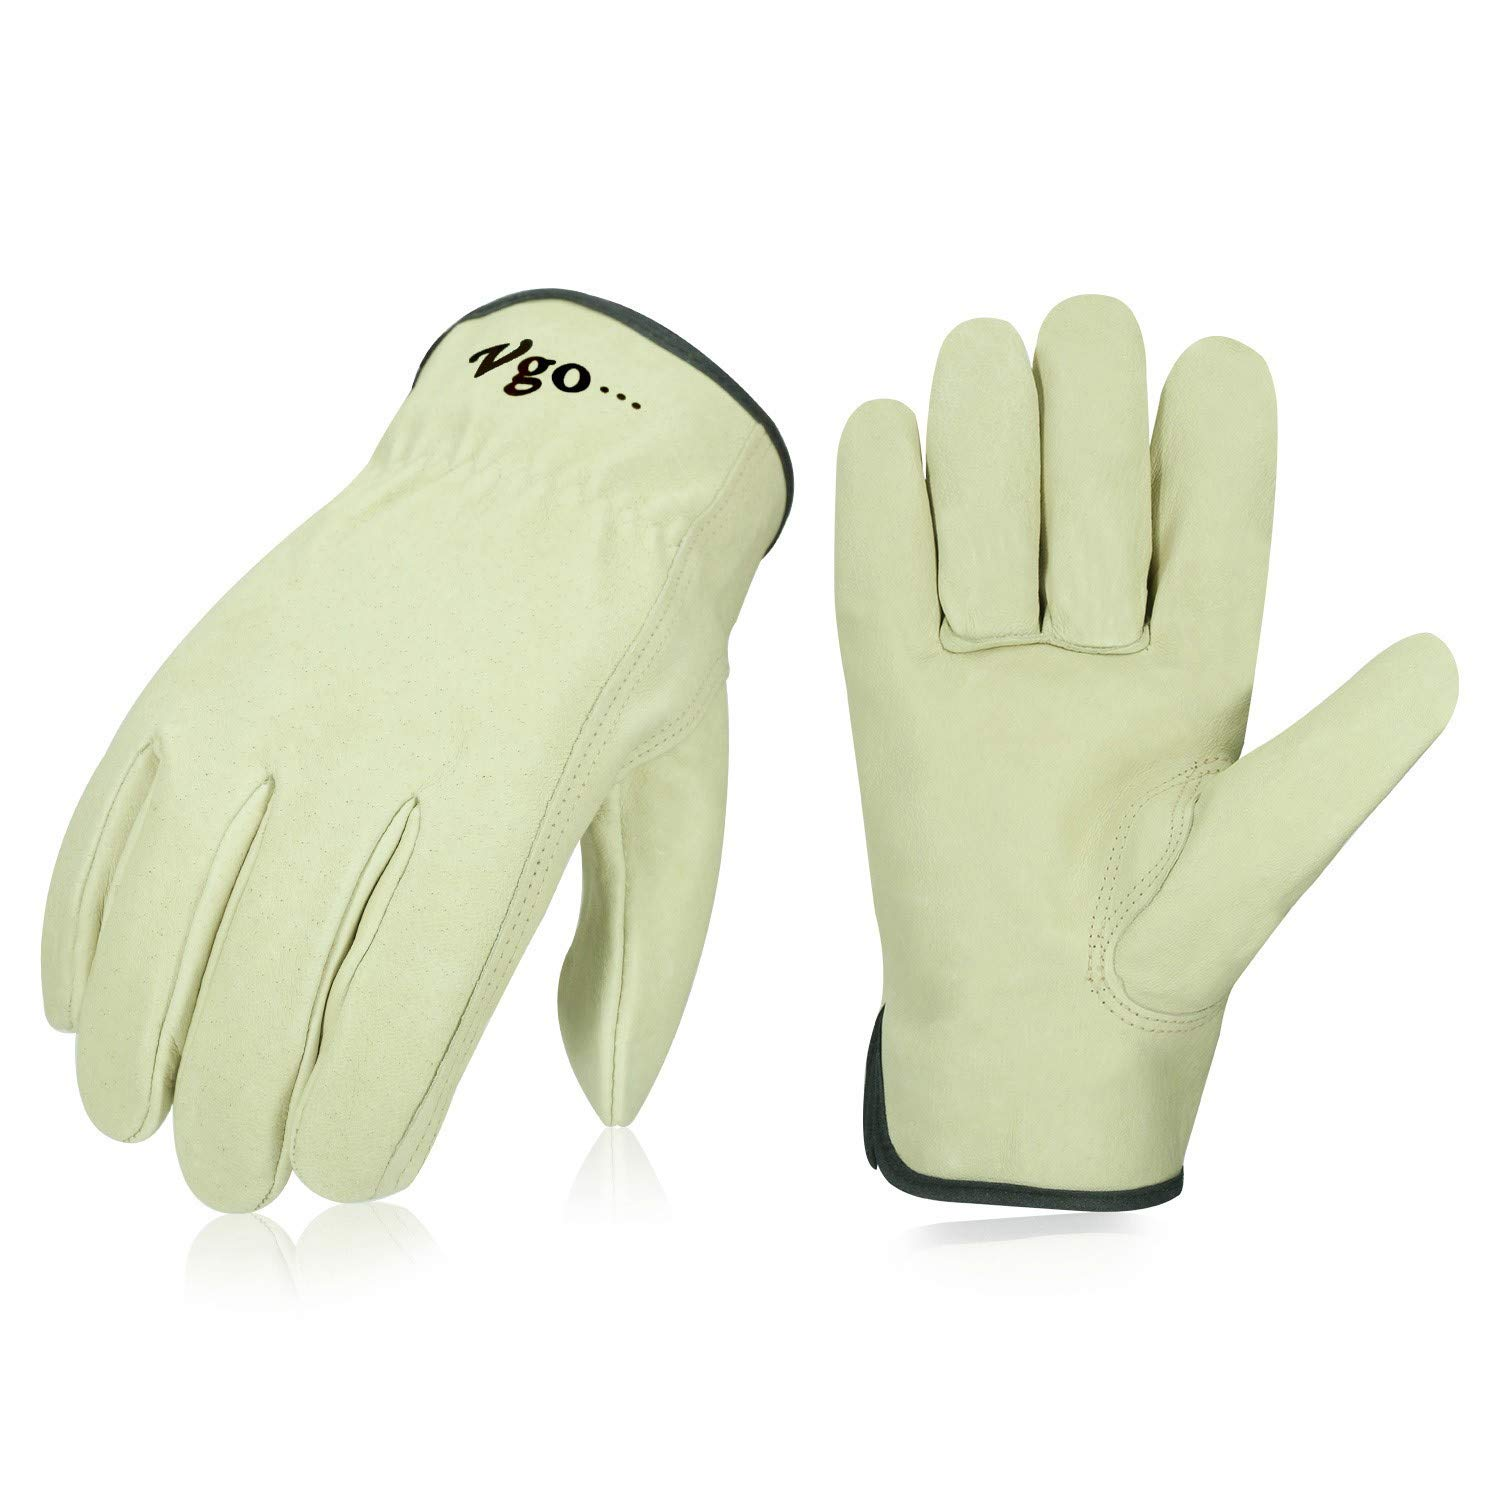 Vgo 3Pairs Unlined Men's Pigskin Leather Work Gloves, Drivers Gloves(Size XL,Light Cyan,PA9501)